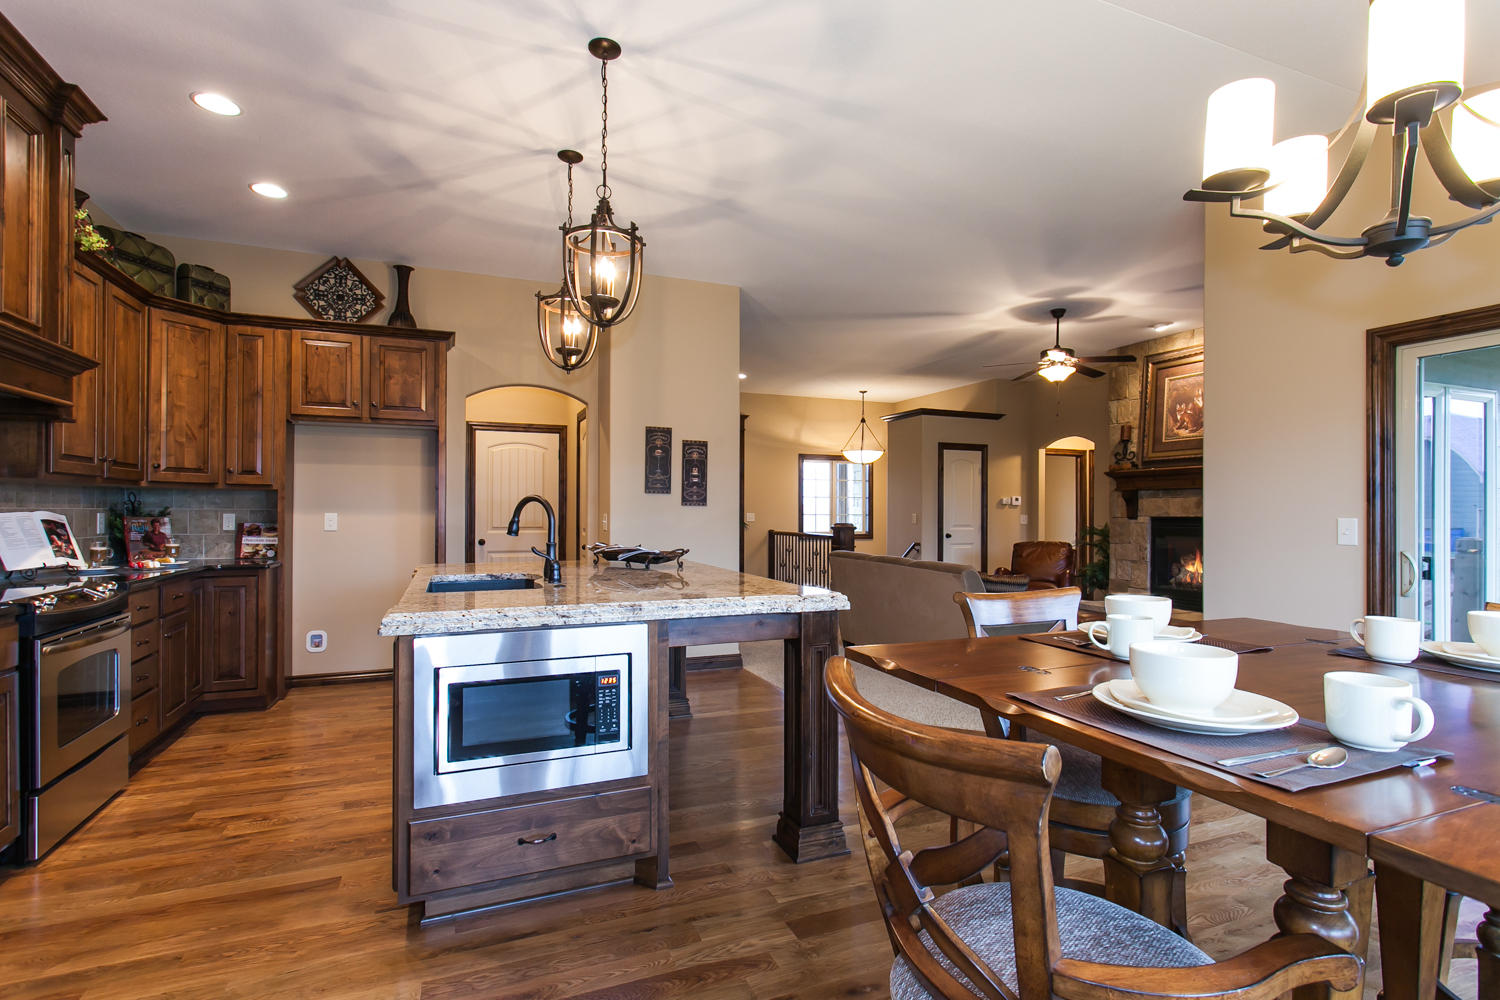 14706 W Valley Hi-large-012-12-Kitchen and Dining-1500x1000-72dpi.jpg